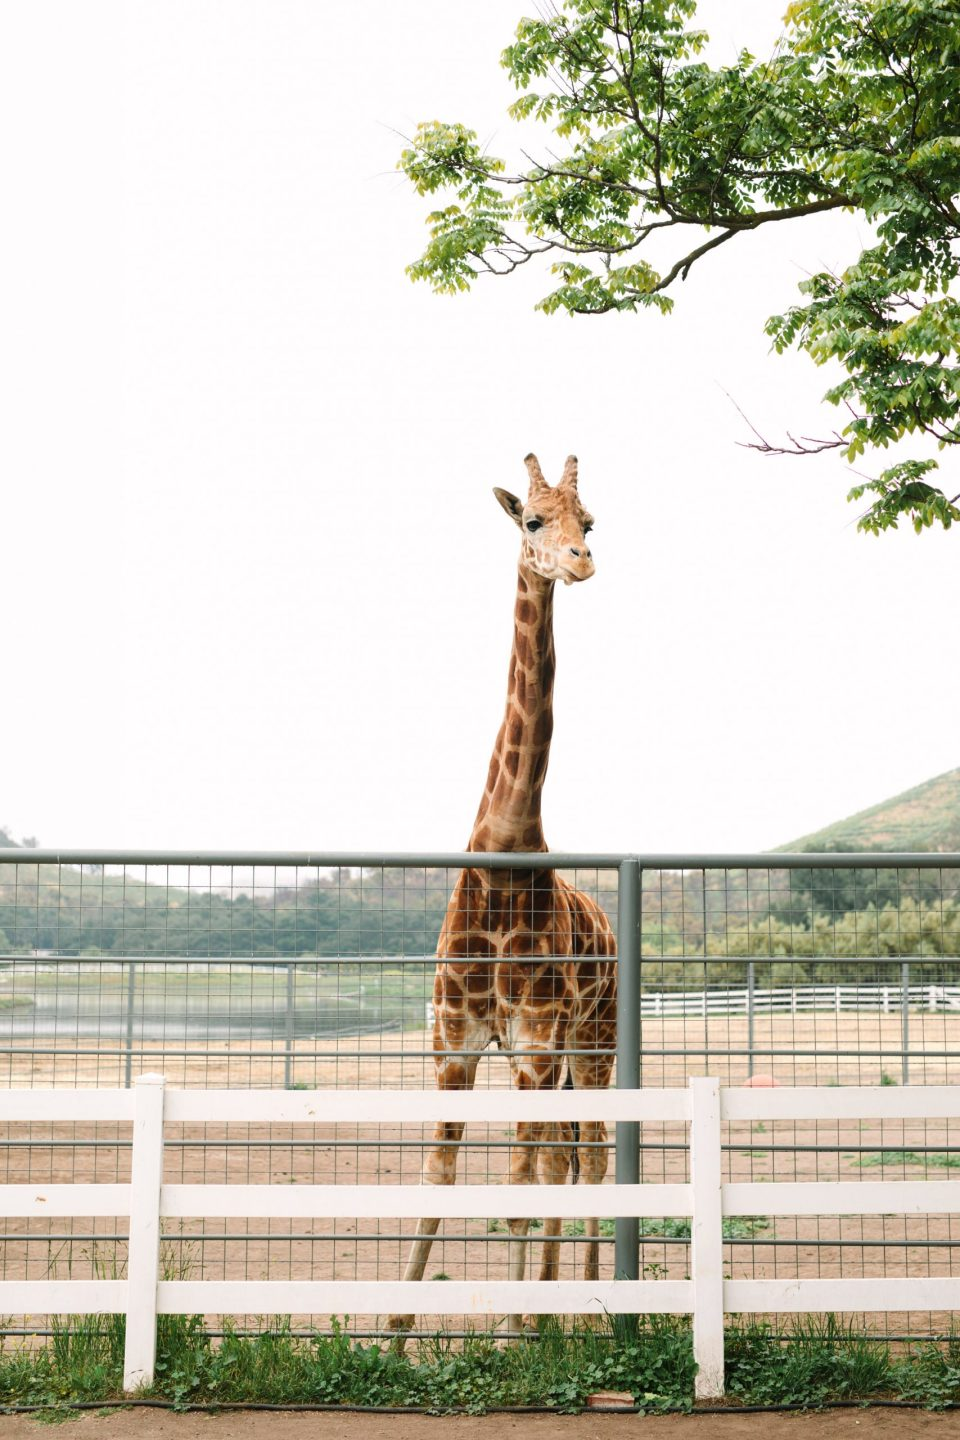 Stanley the giraffe by Mary Costa Photography